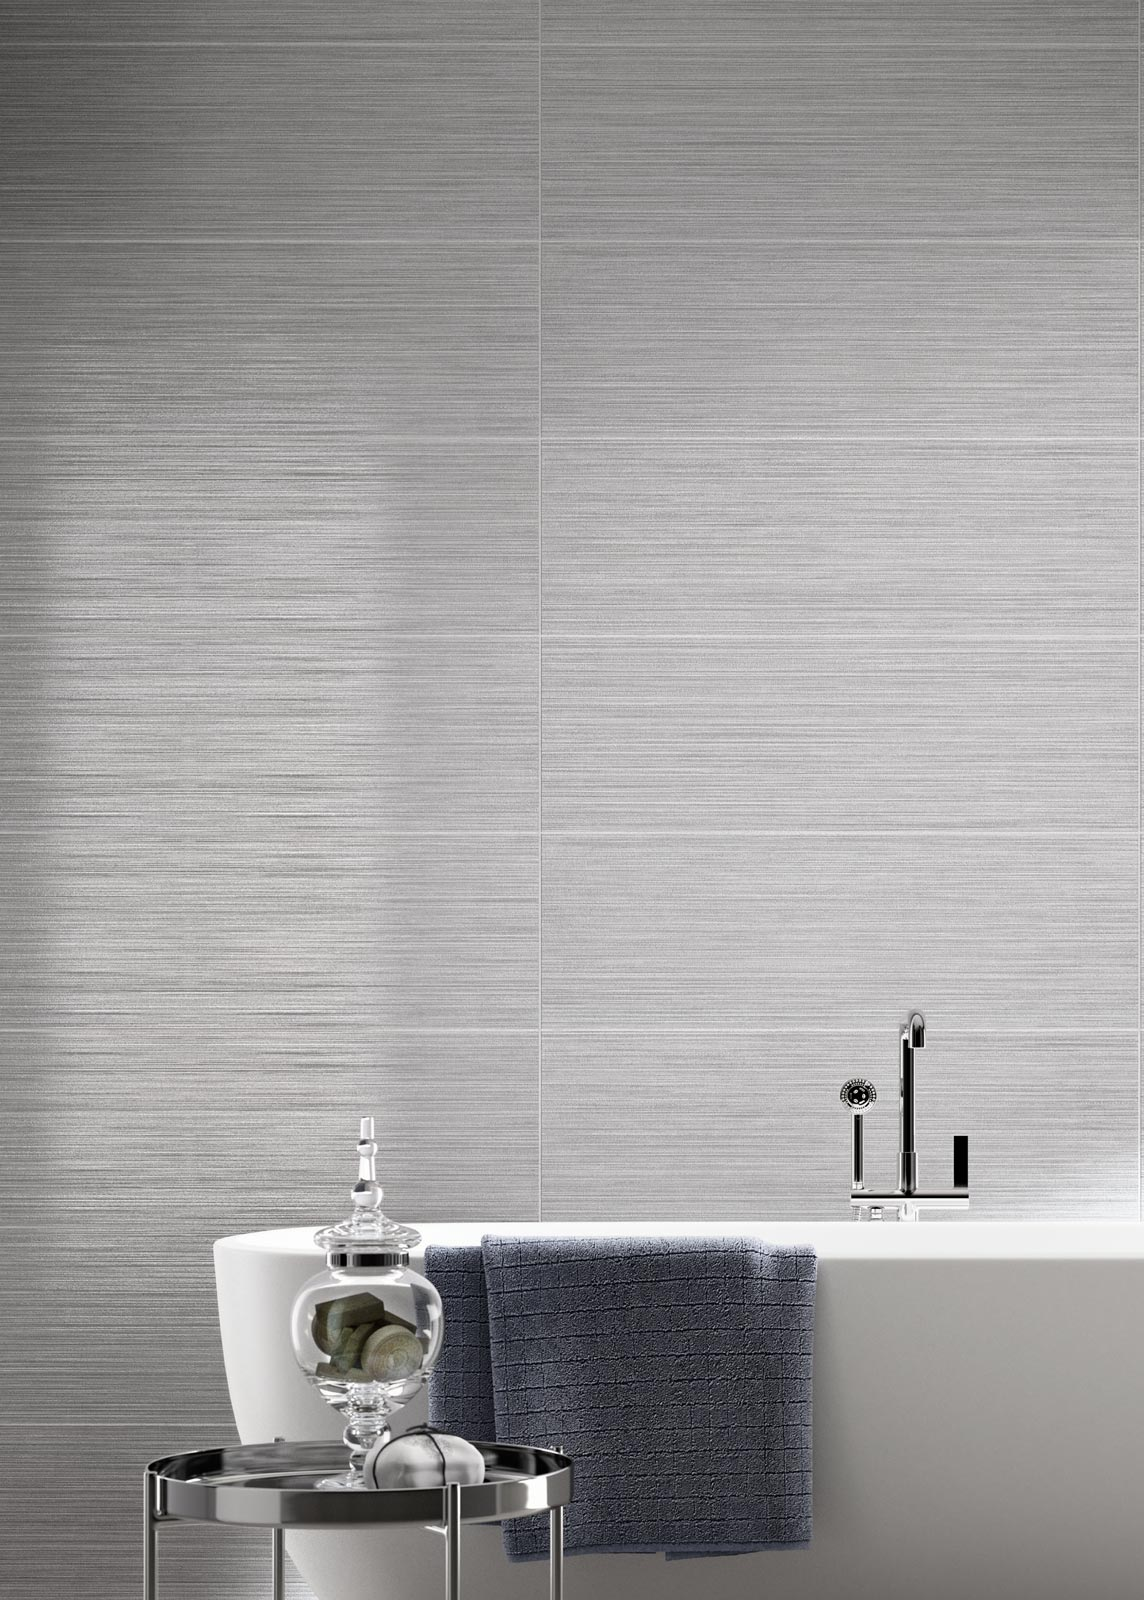 Wallpaper collection elegatnt tiles for walls and bathrooms ragno wallpaper ceramic tiles ragno6081 dailygadgetfo Choice Image